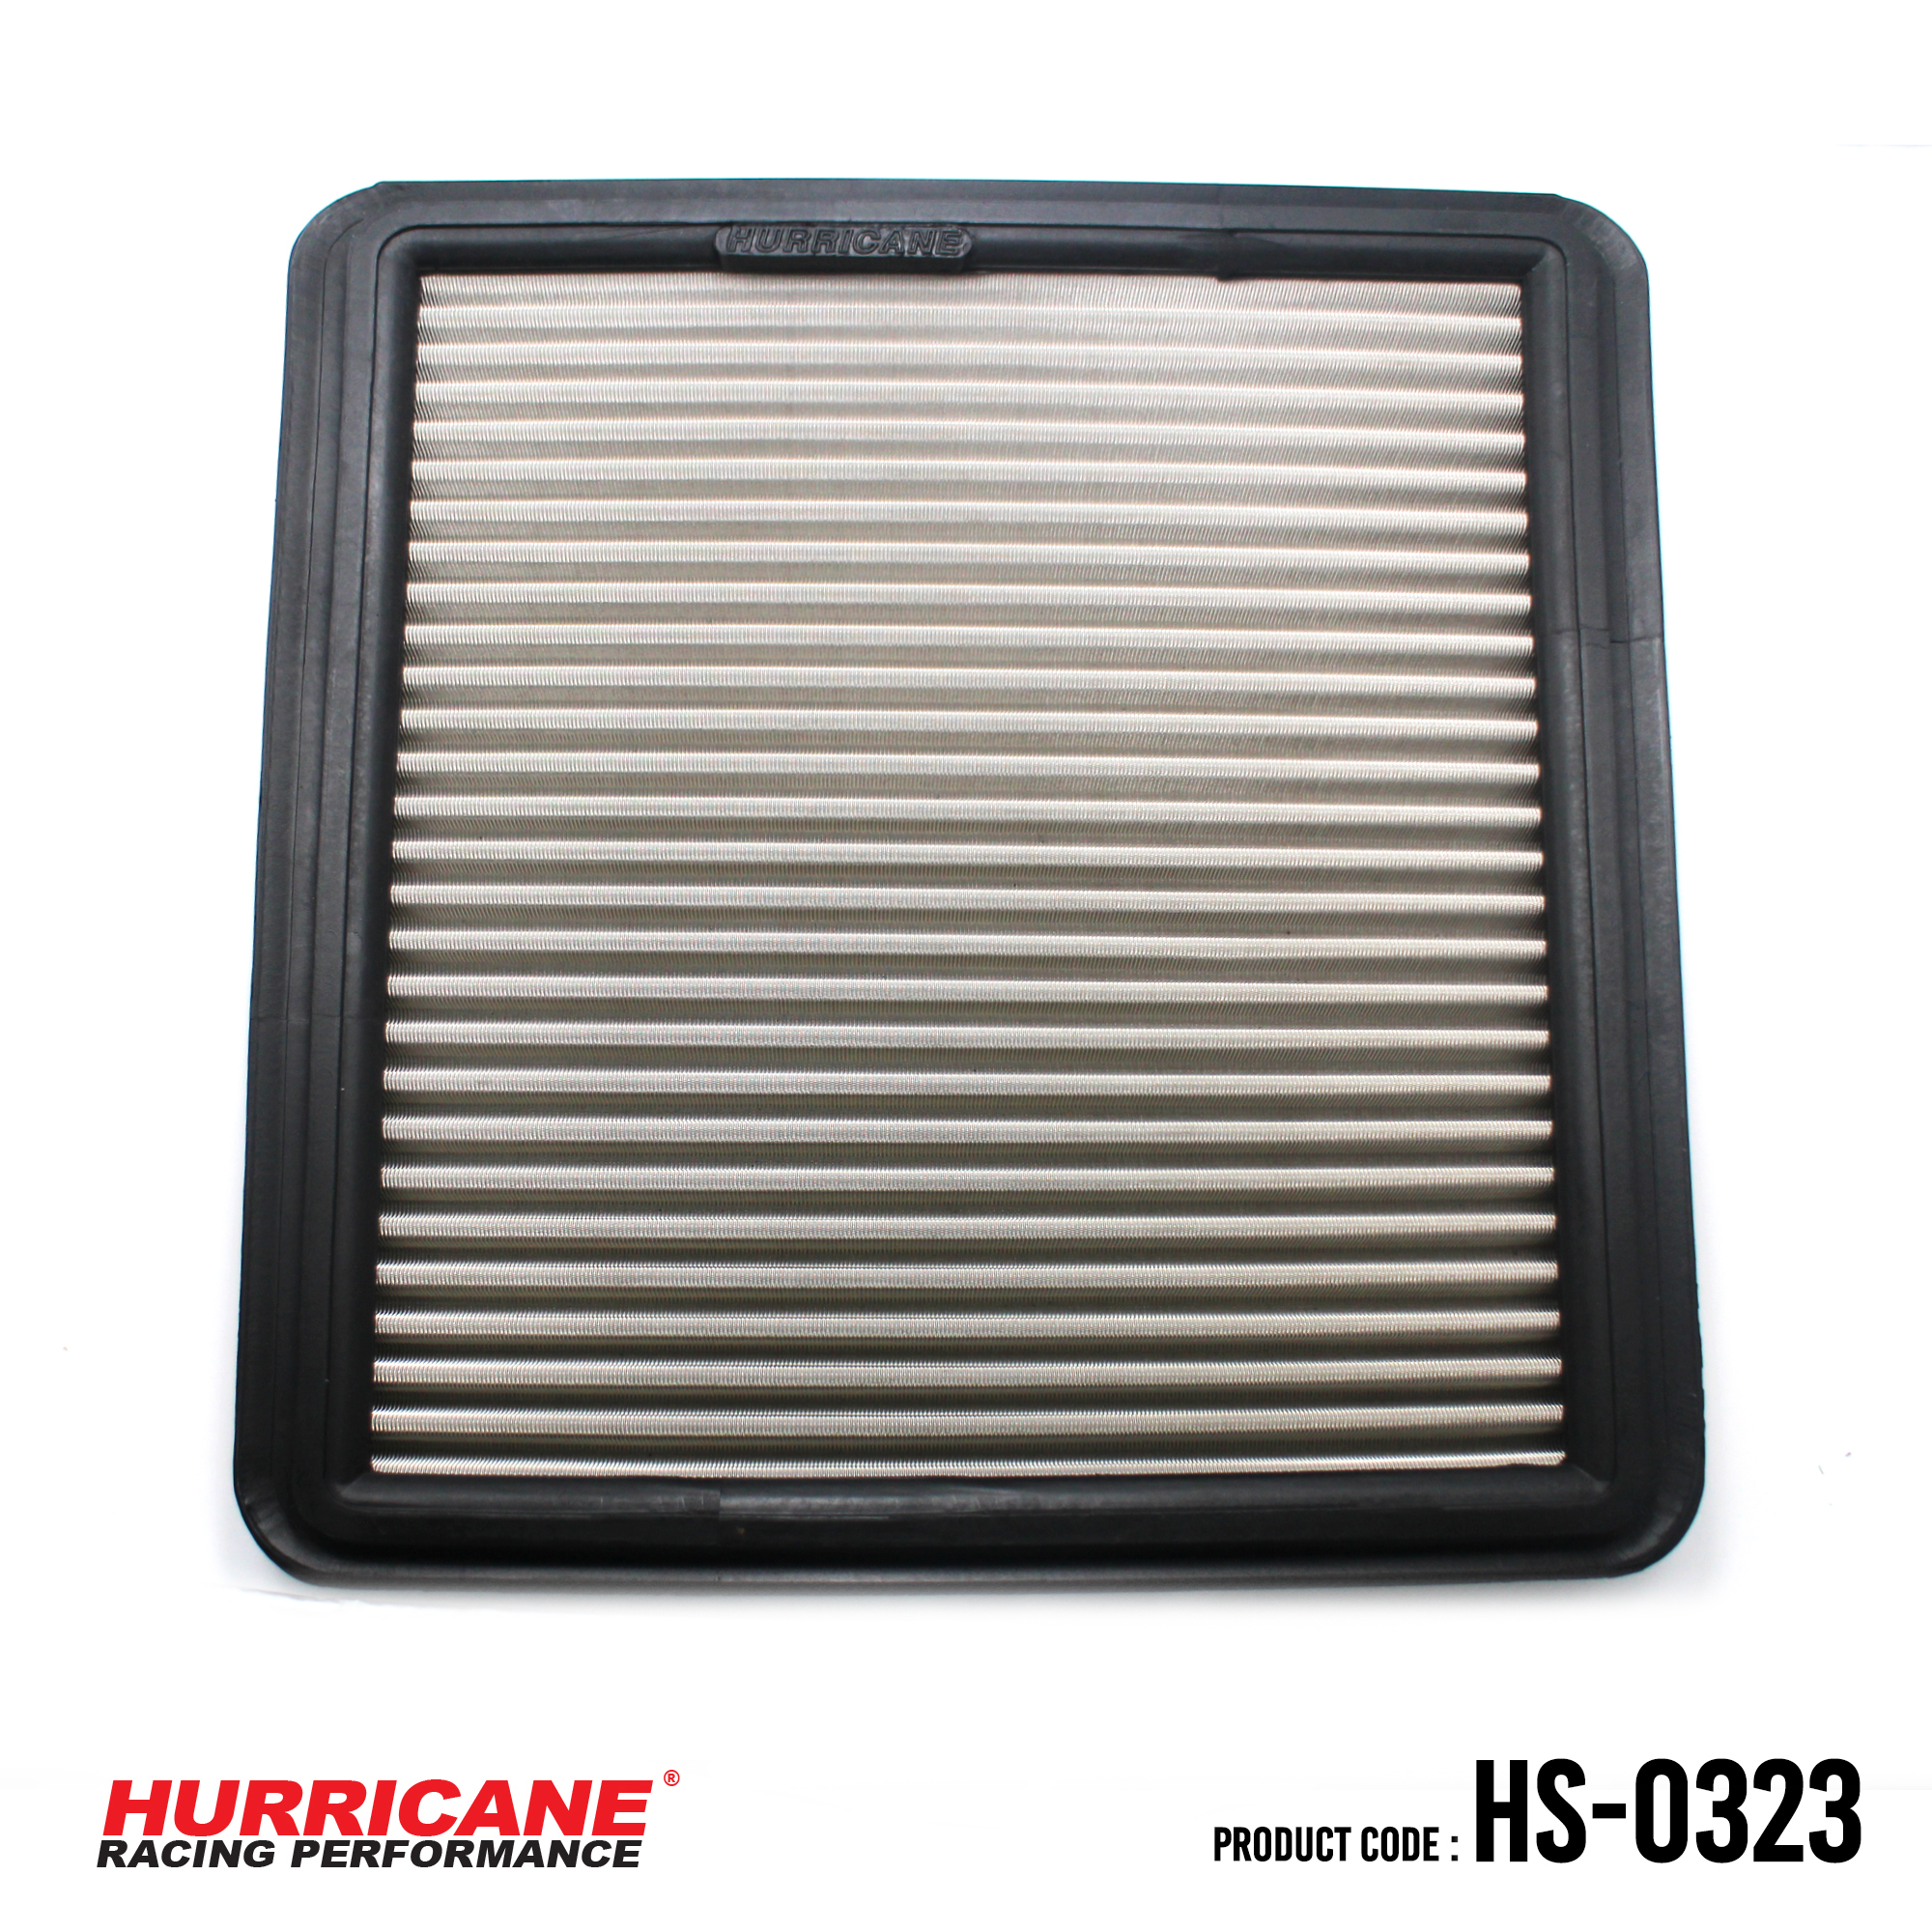 HURRICANE STAINLESS STEEL AIR FILTER FOR HS-0323  Toyota